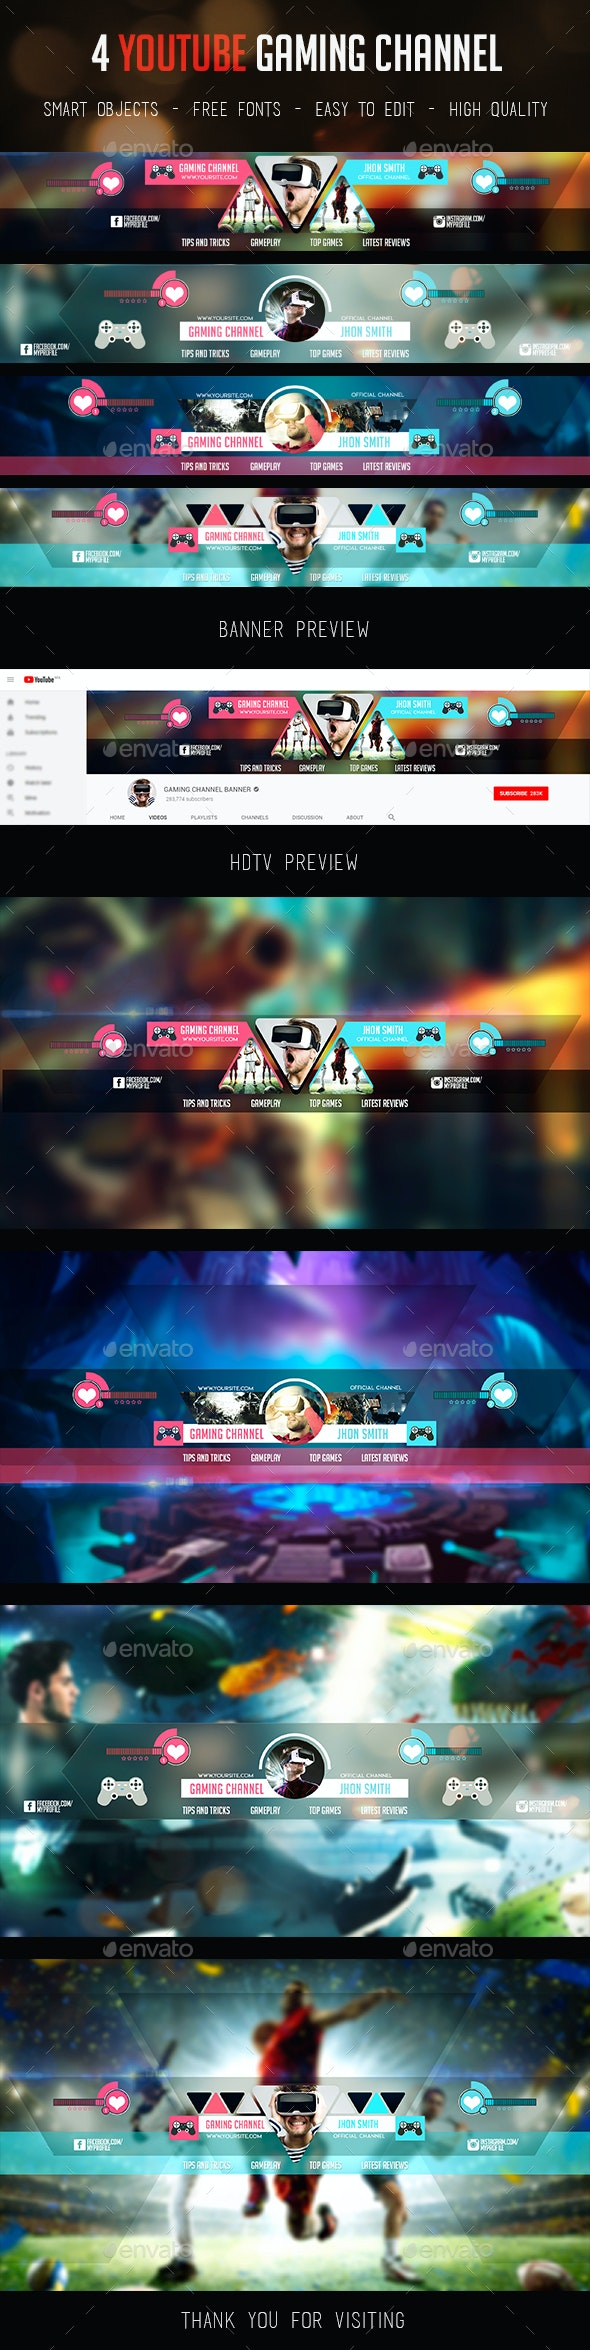 Gaming Channel Youtube Banner - YouTube Social Media